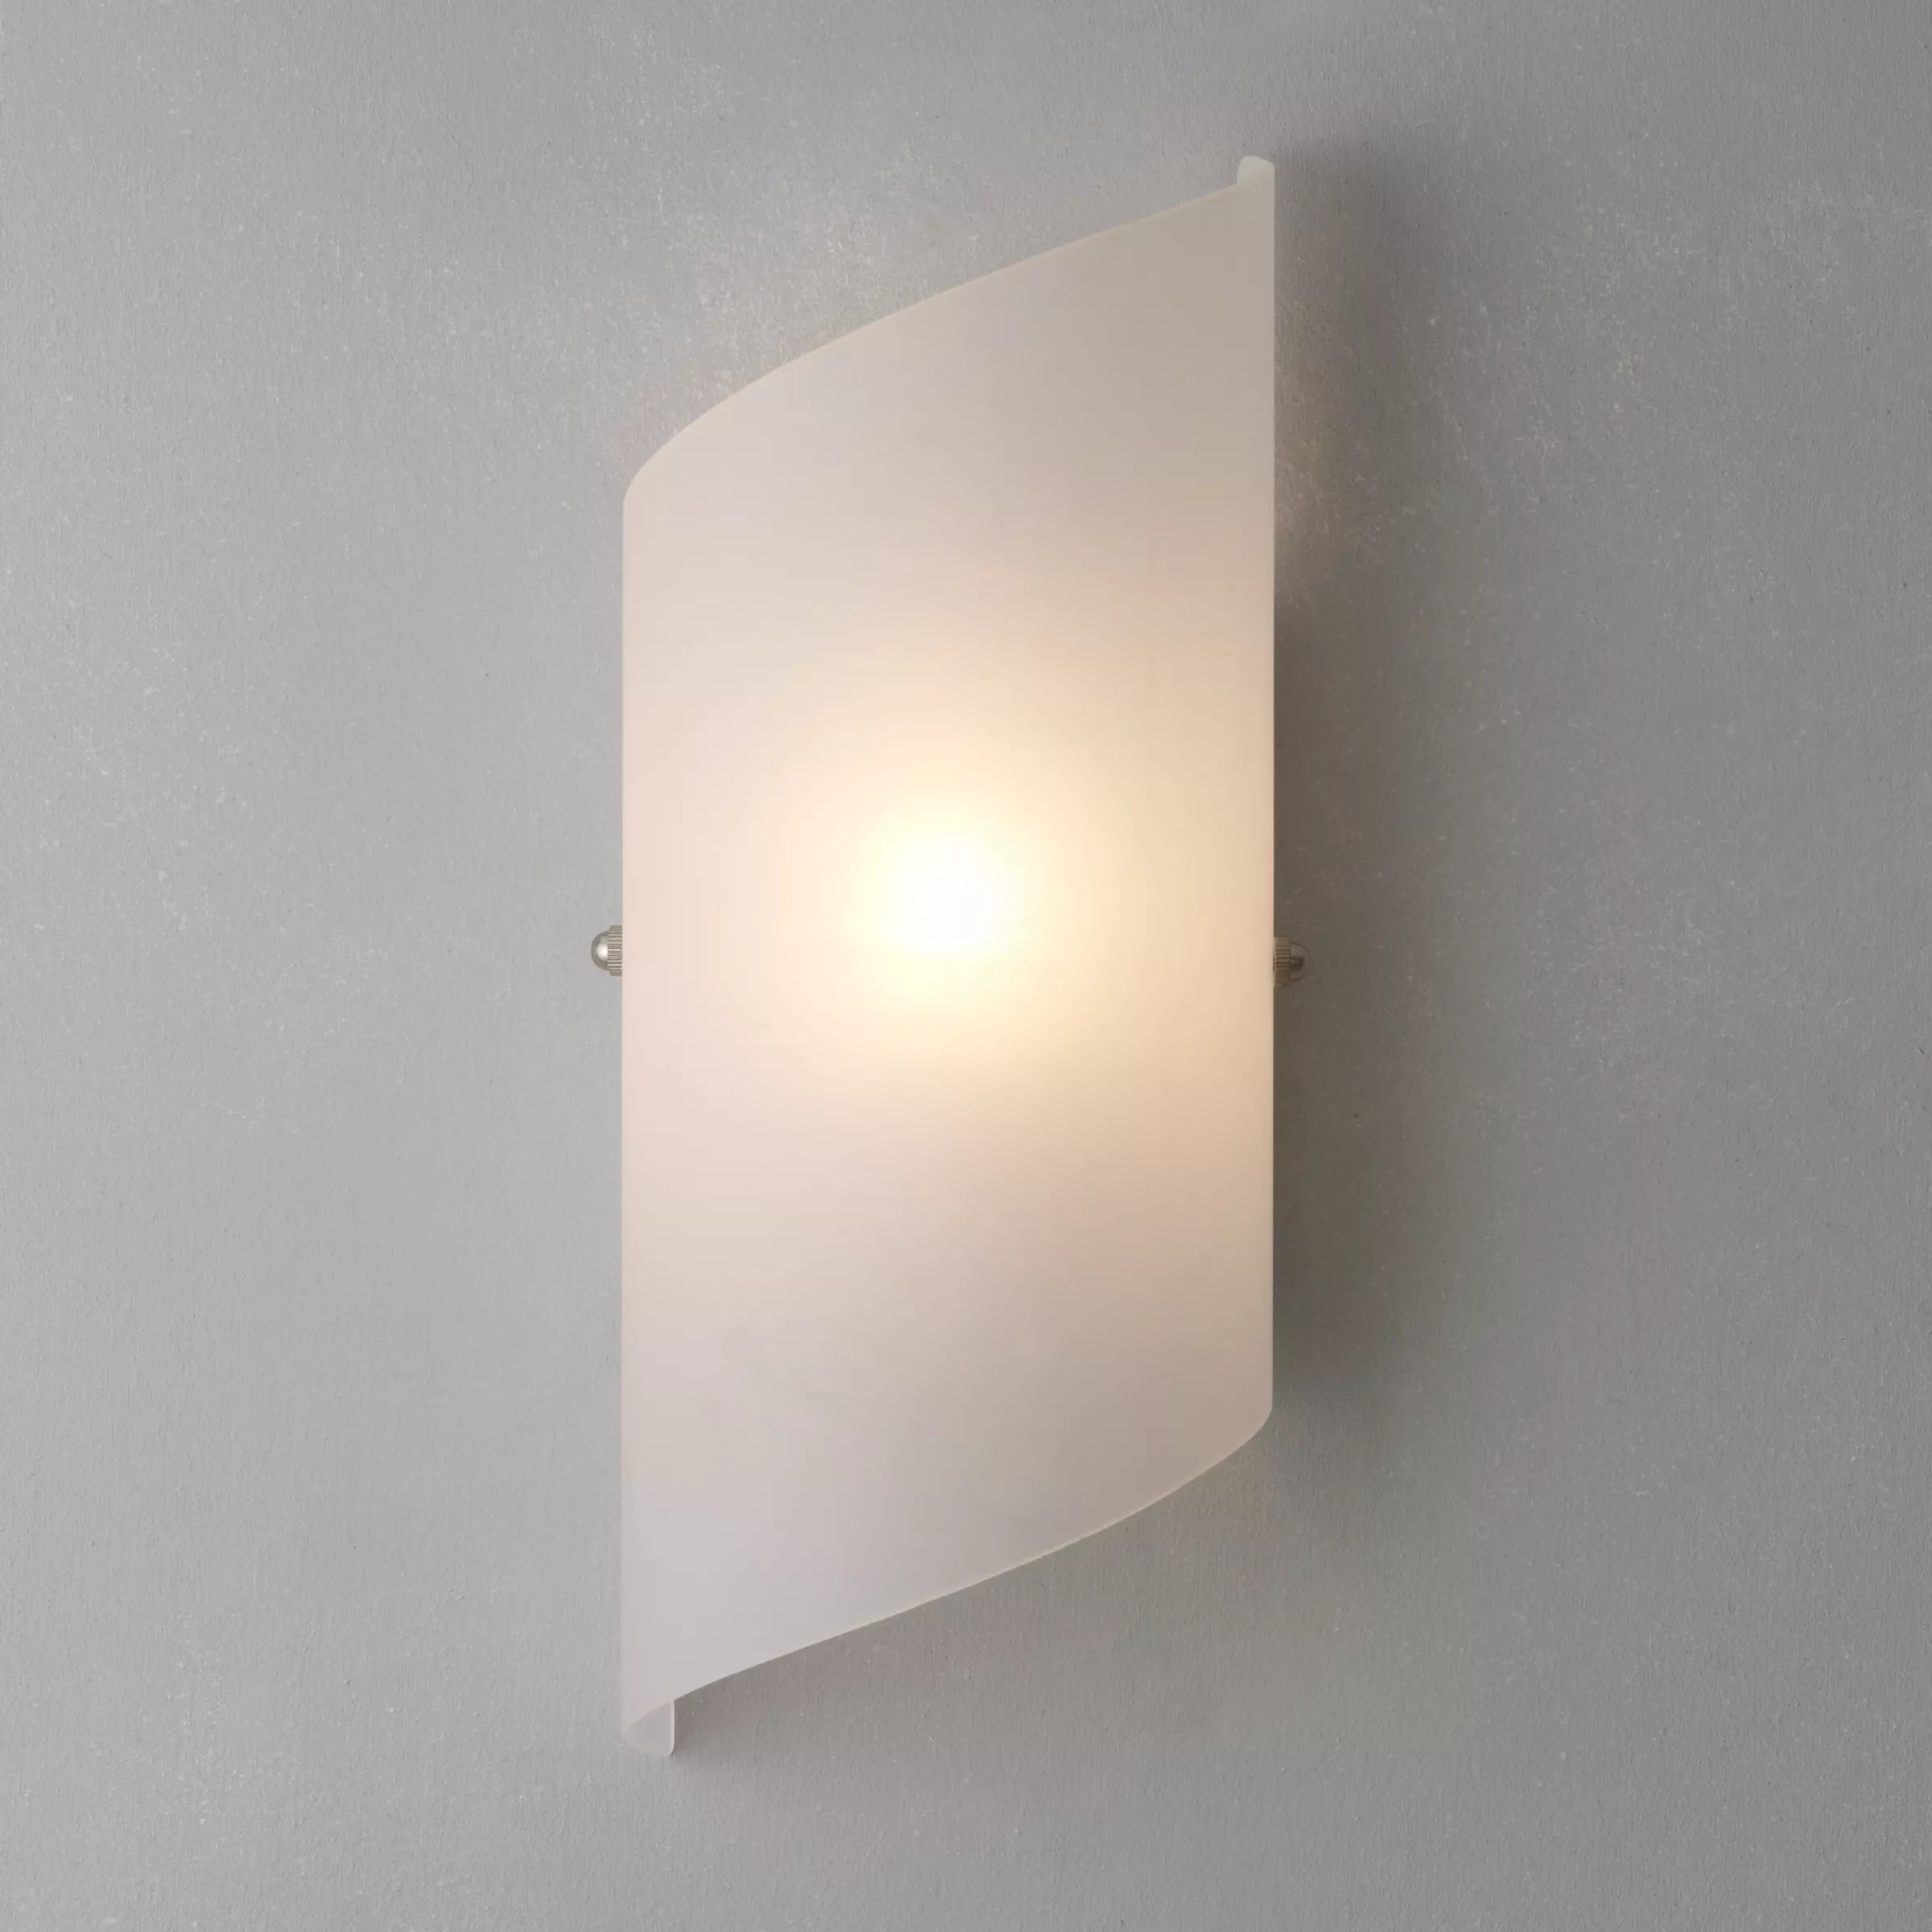 Wall Light John Lewis Scroll Uplighter Wall Light Octer 30 00